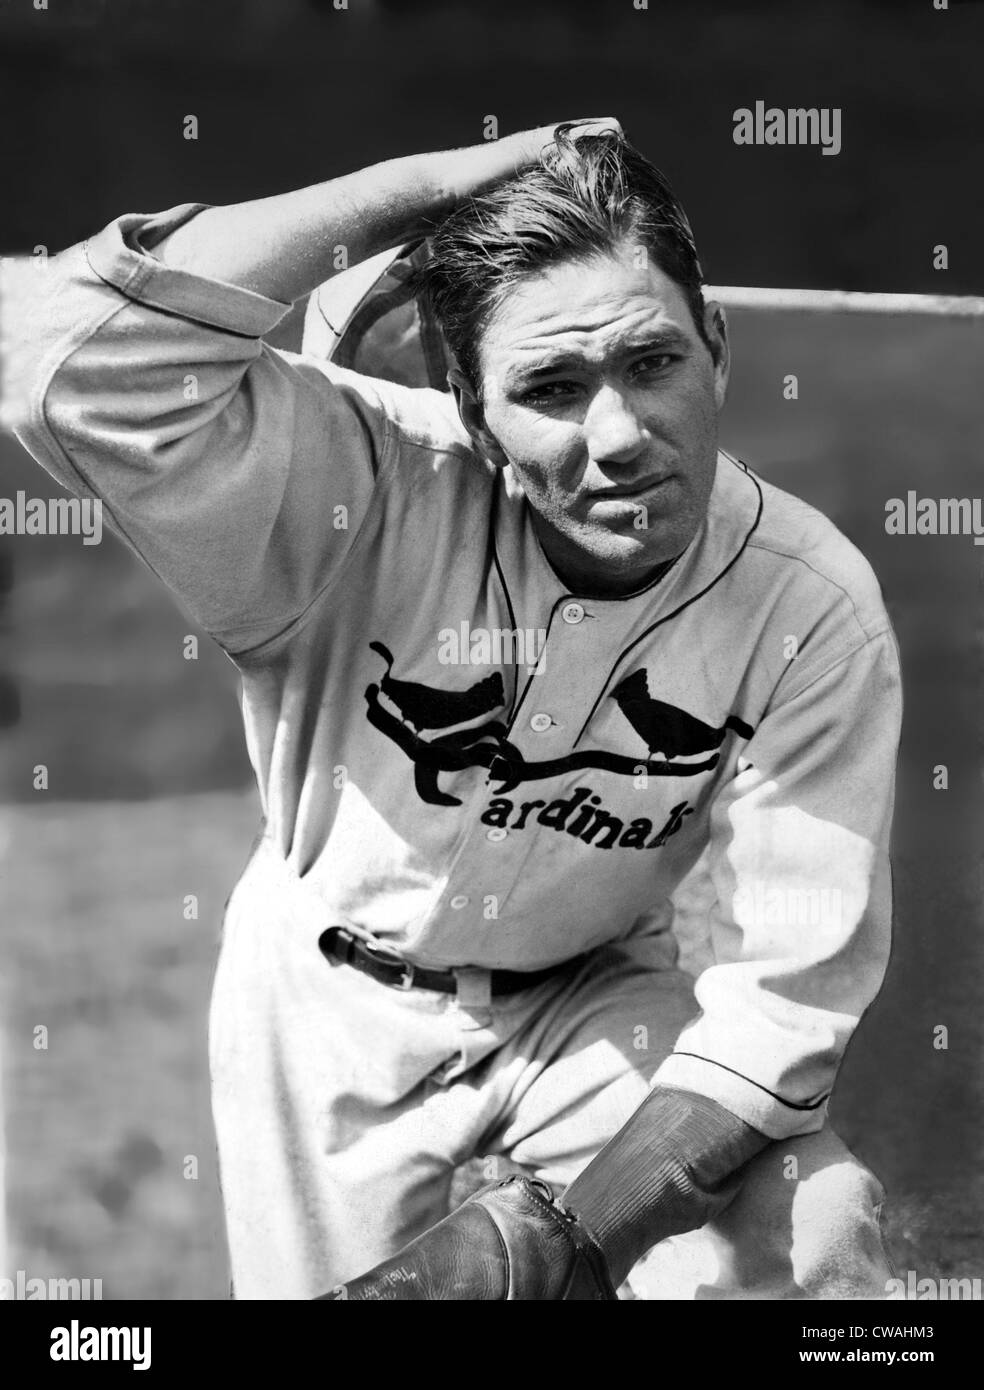 Jay Hanna 'Dizzy' Dean, (1910-1974) ace pitcher for St. Louis Cardinals during 1930s, 10/1/34. Courtesy: - Stock Image